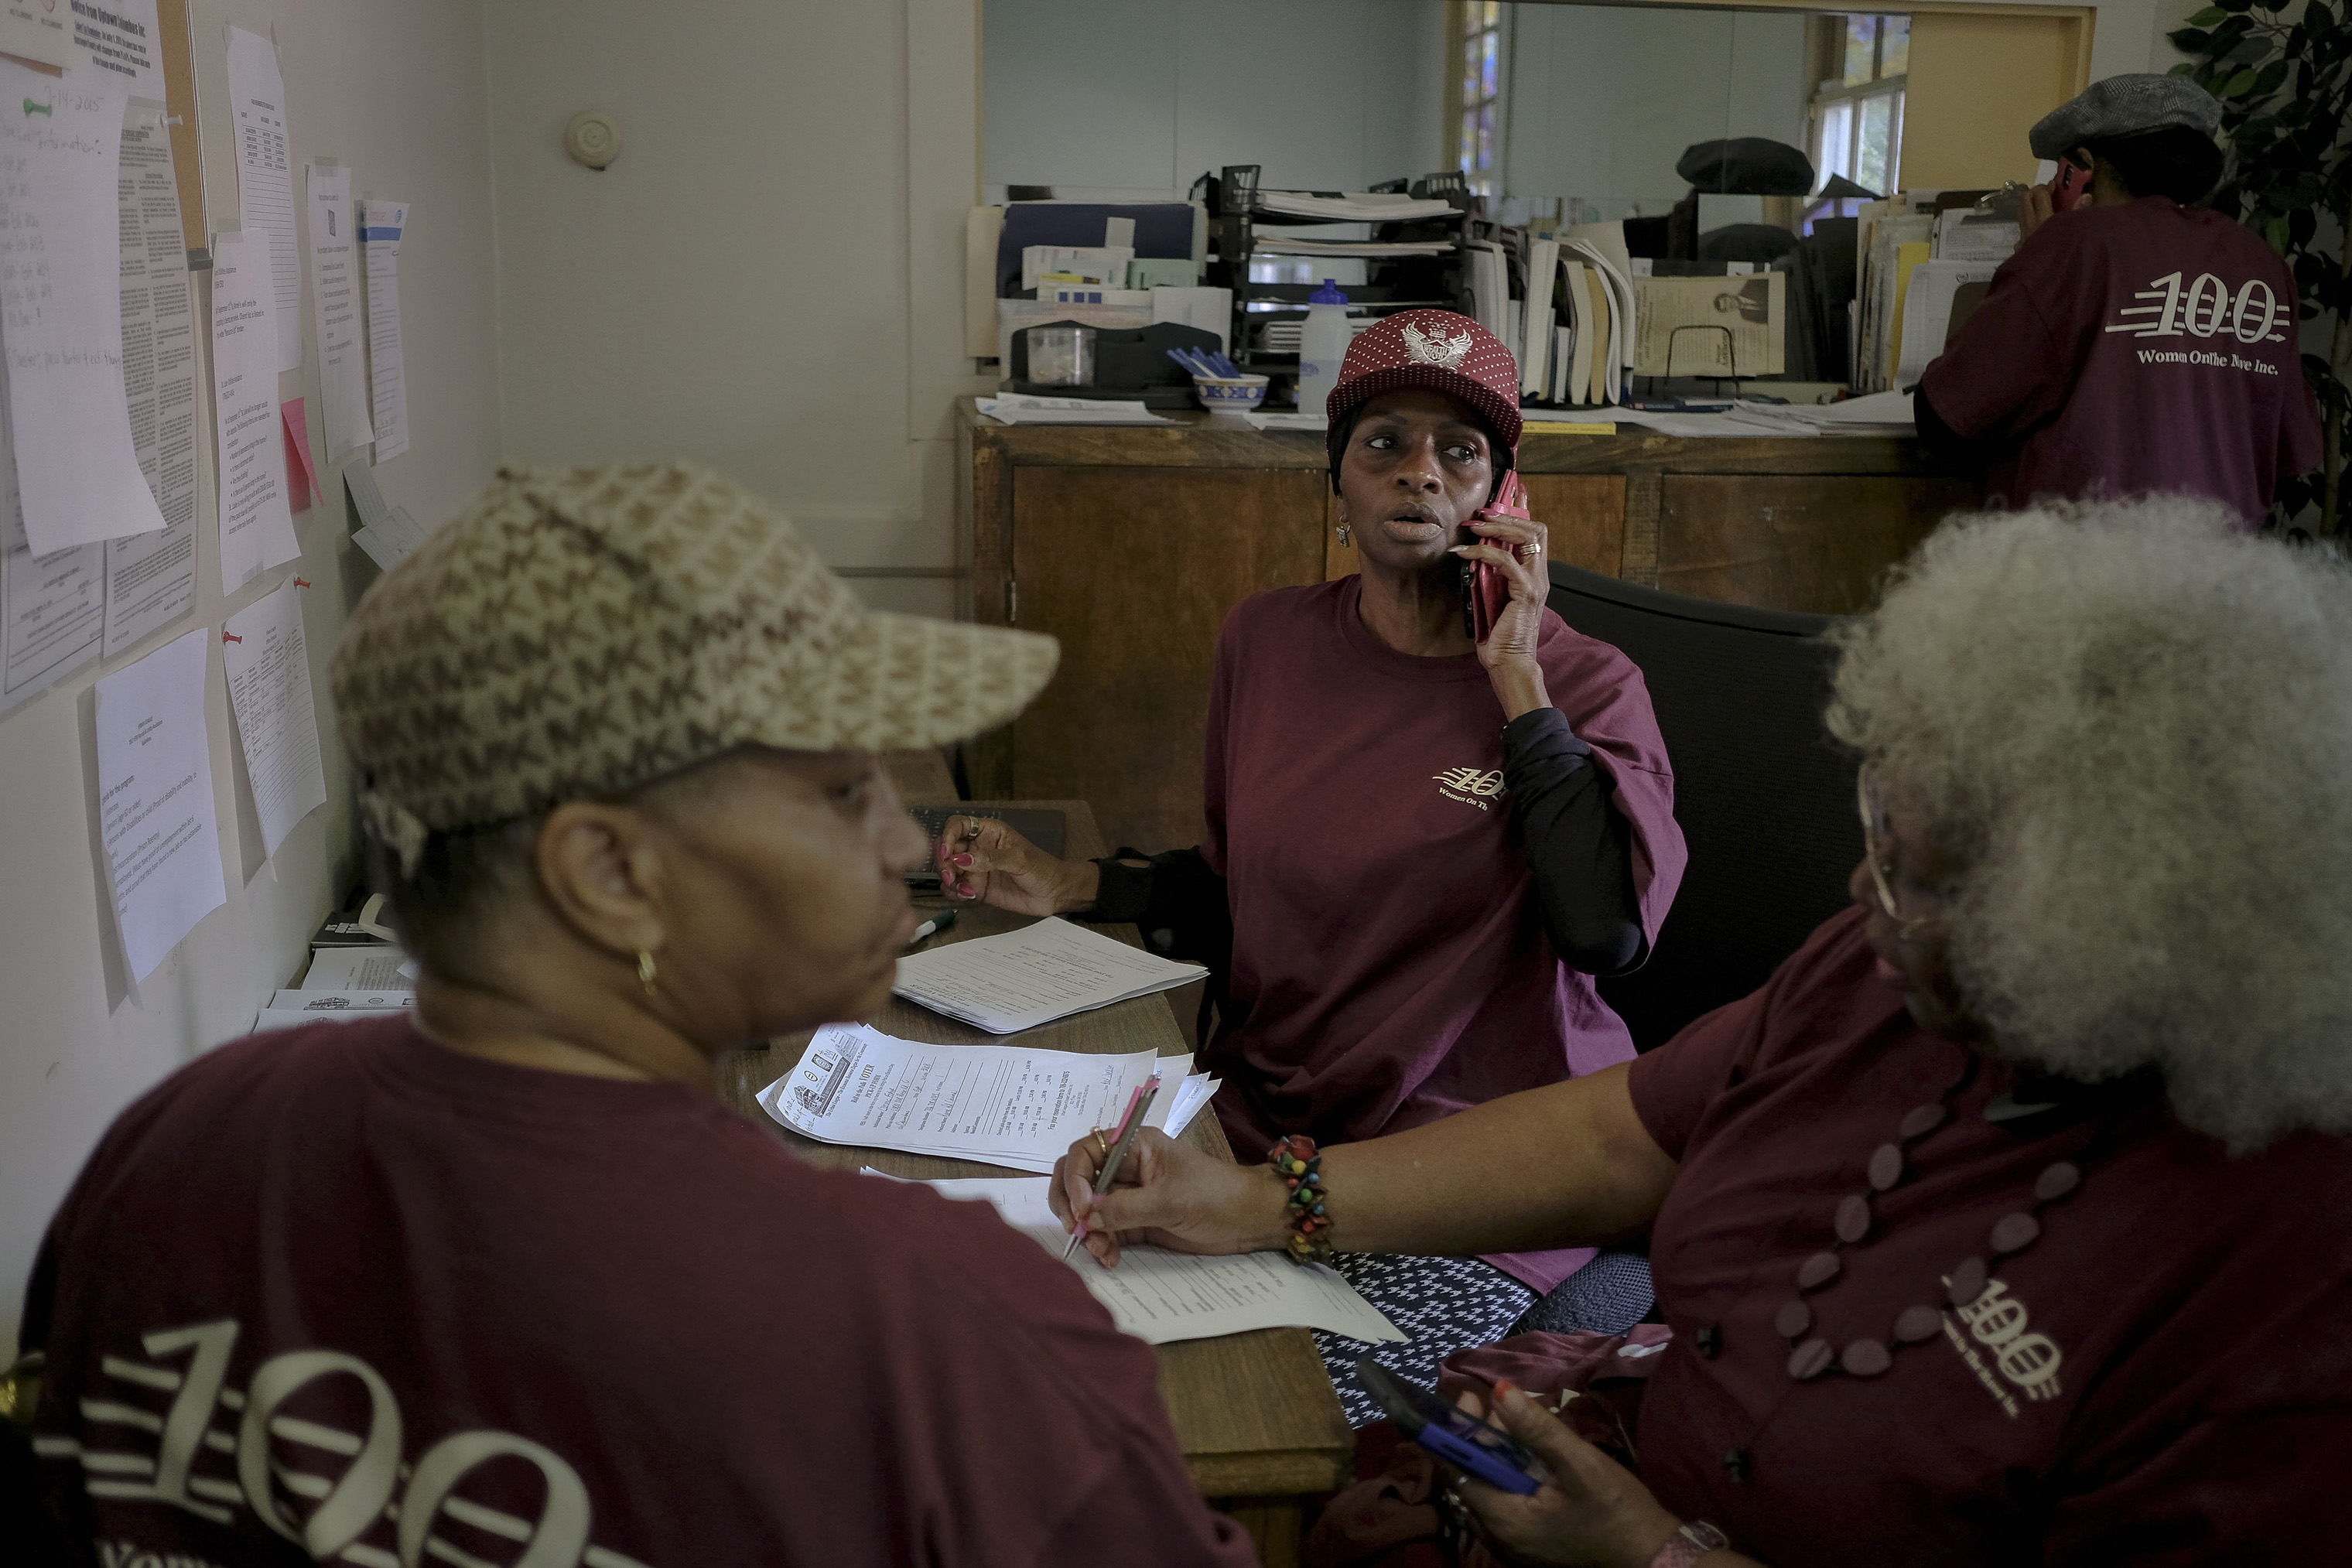 Members of Women on the Move confirm registration and polling precincts with callers at the Urban League of Greater Columbus in Columbus, Ga. on election day, Nov. 6, 2018.